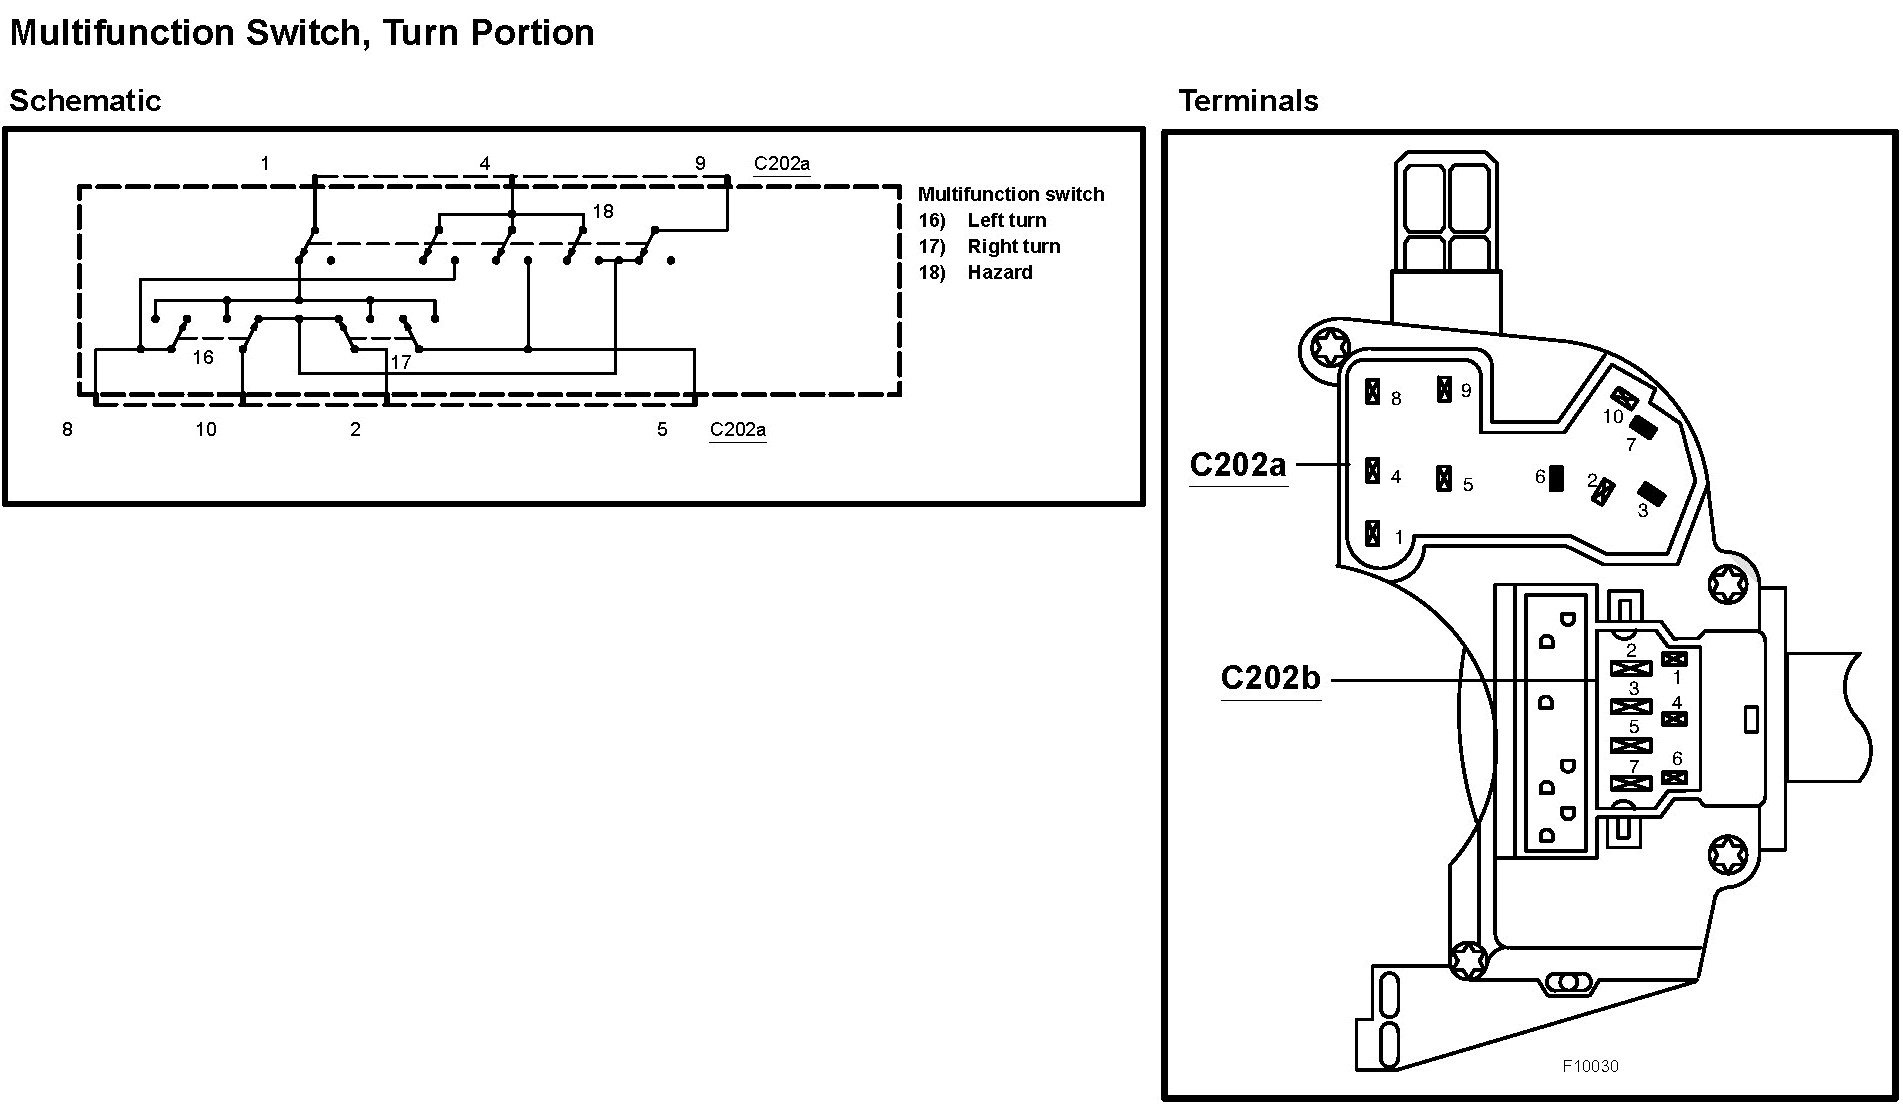 Multifunction Switch Wiring Diagram